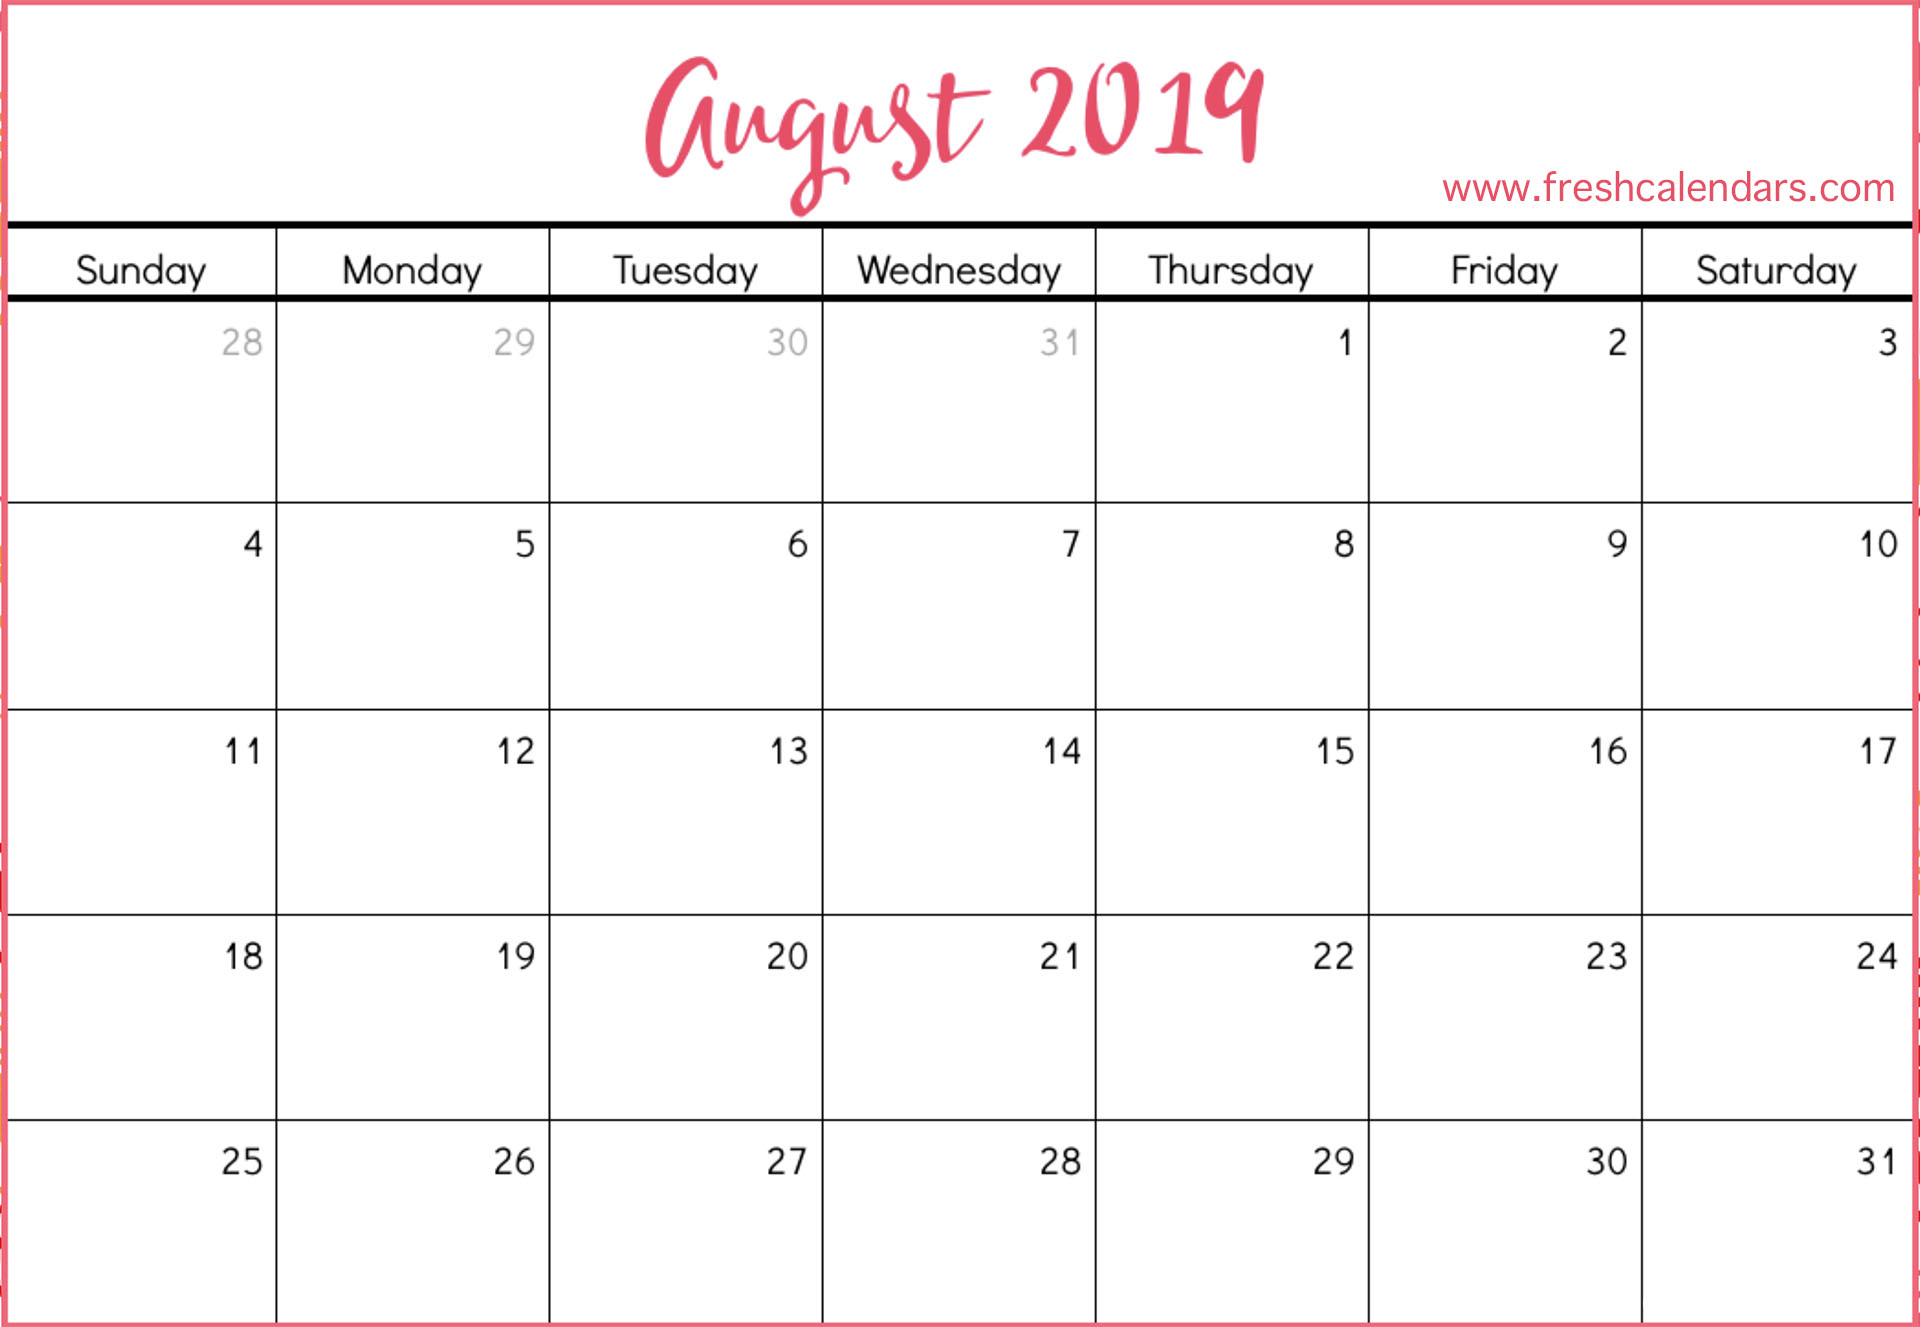 June July August 2019 Calendar Printable.August 2019 Calendar Printable Fresh Calendars